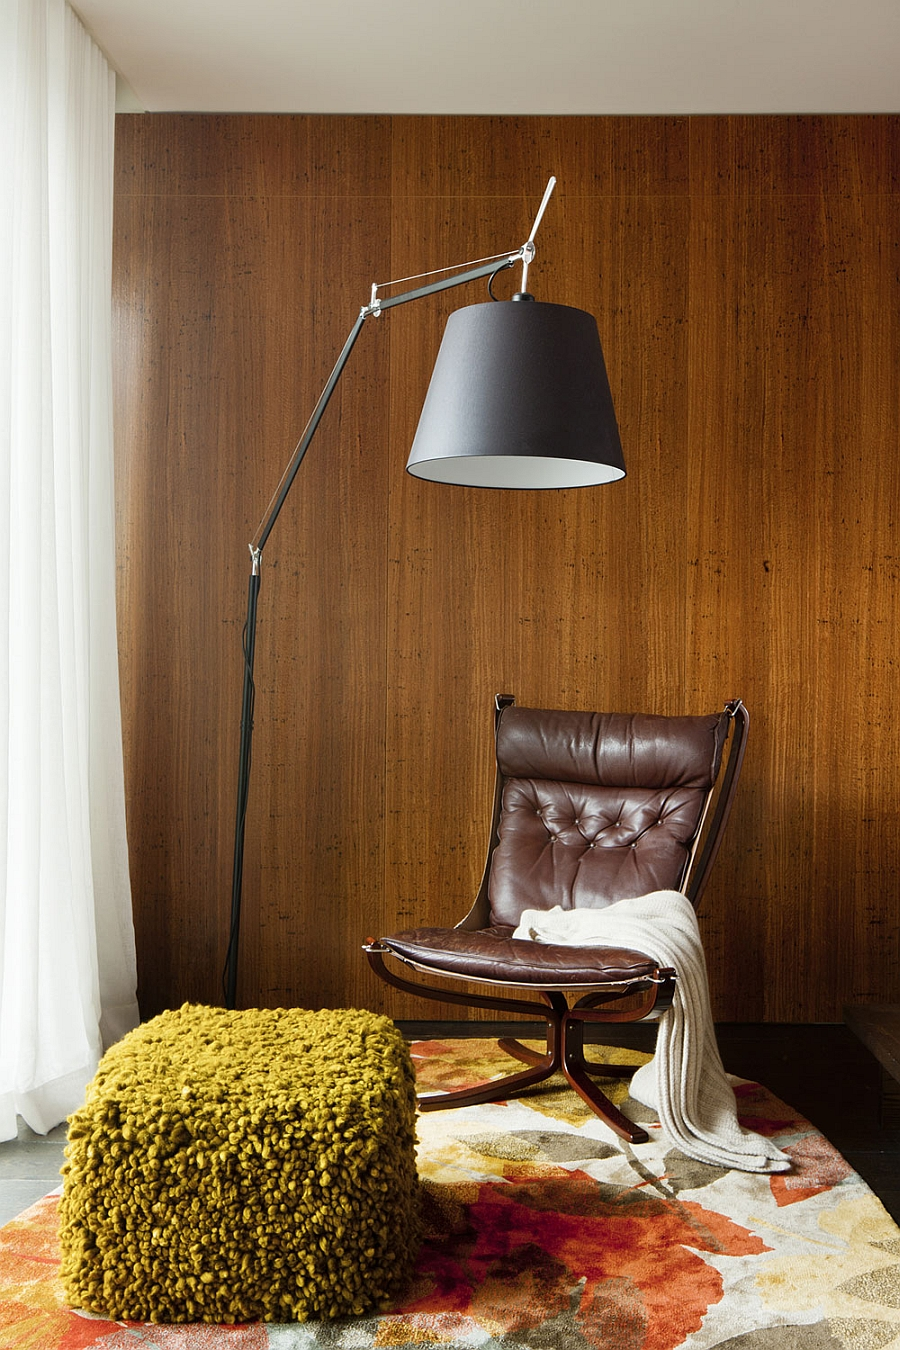 Stylish reading nook with leather seating